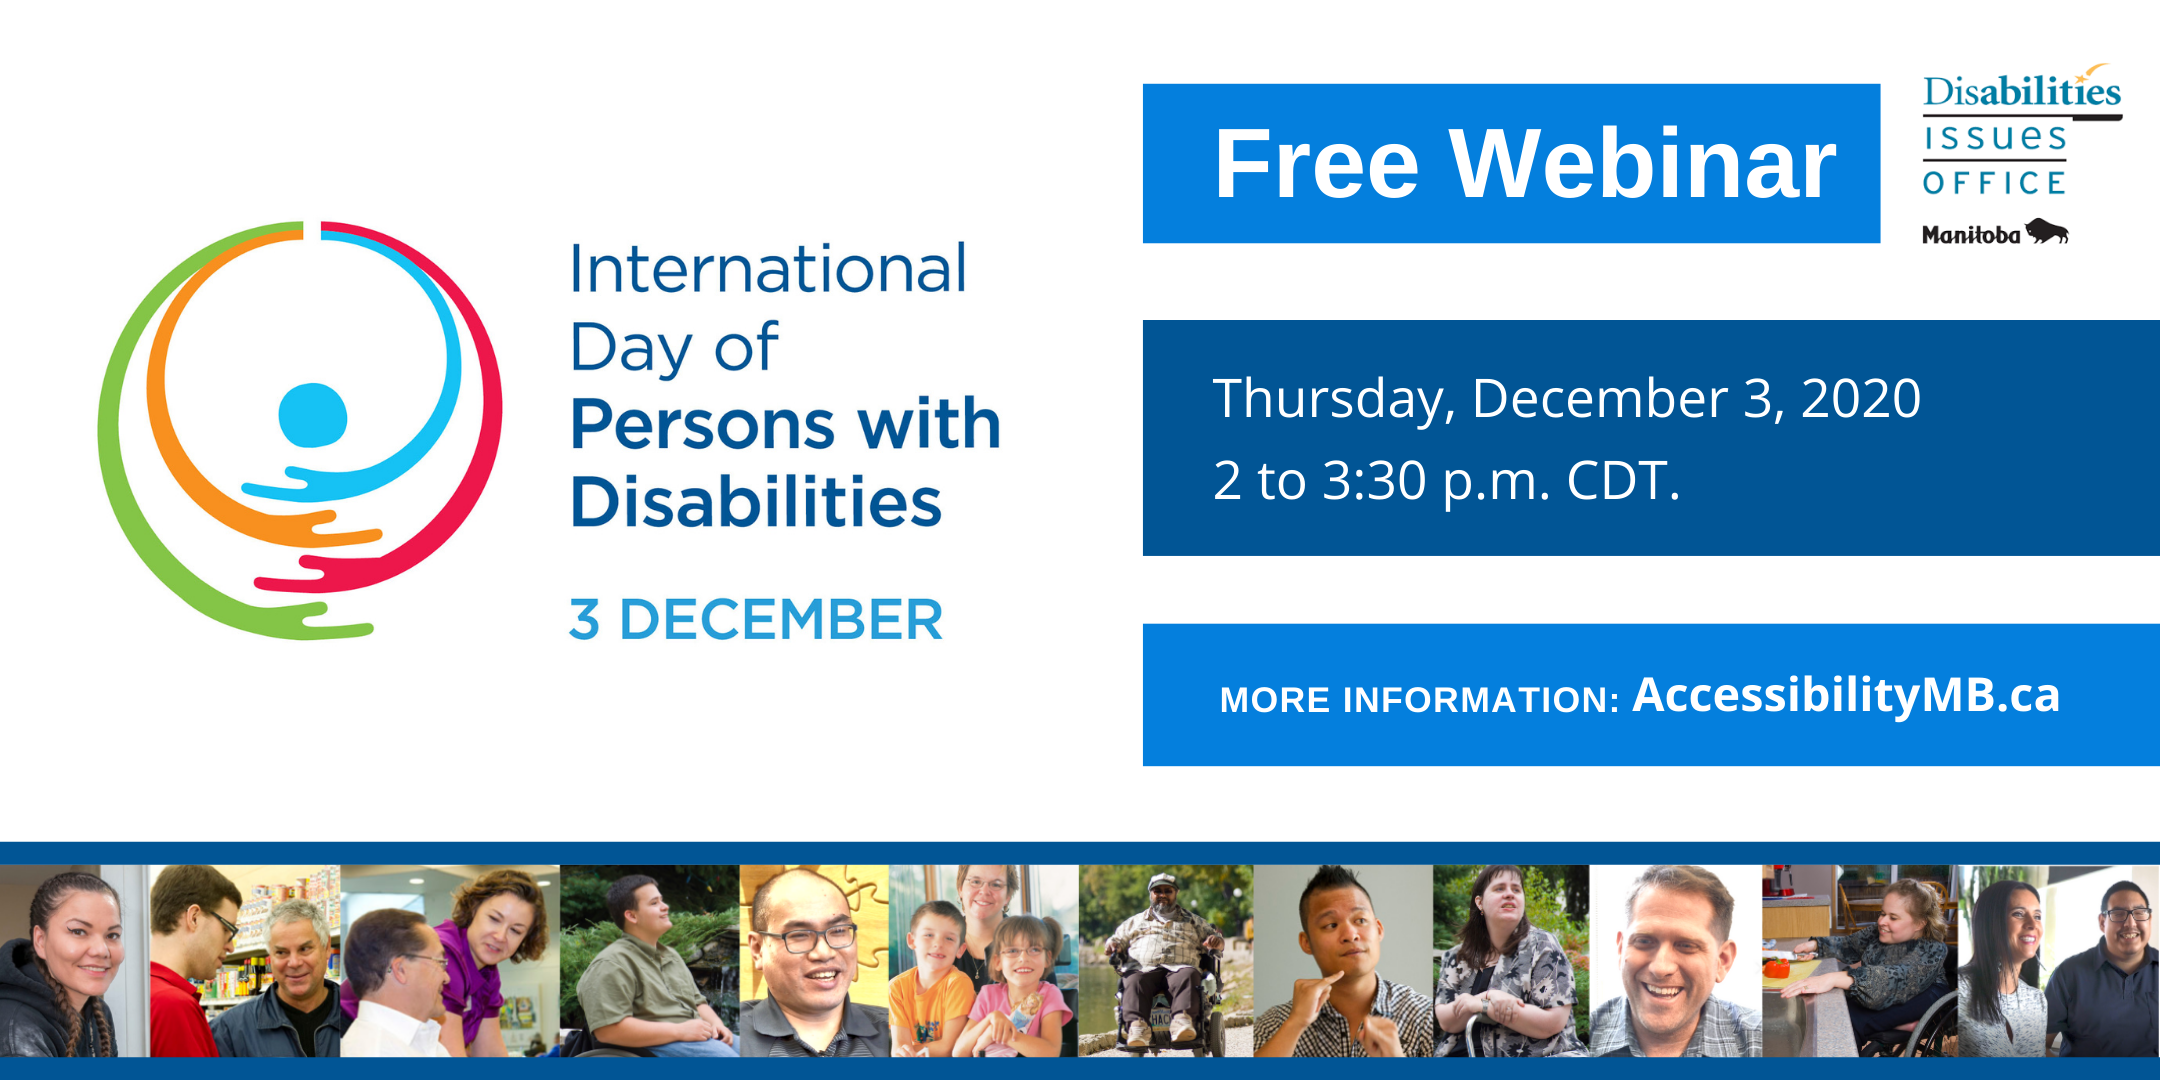 International Day of Persons with Disabilities December 3rd - free webinar Thursday, December 3rd from 2 to 3:30pm More information AccessibilityMB.ca